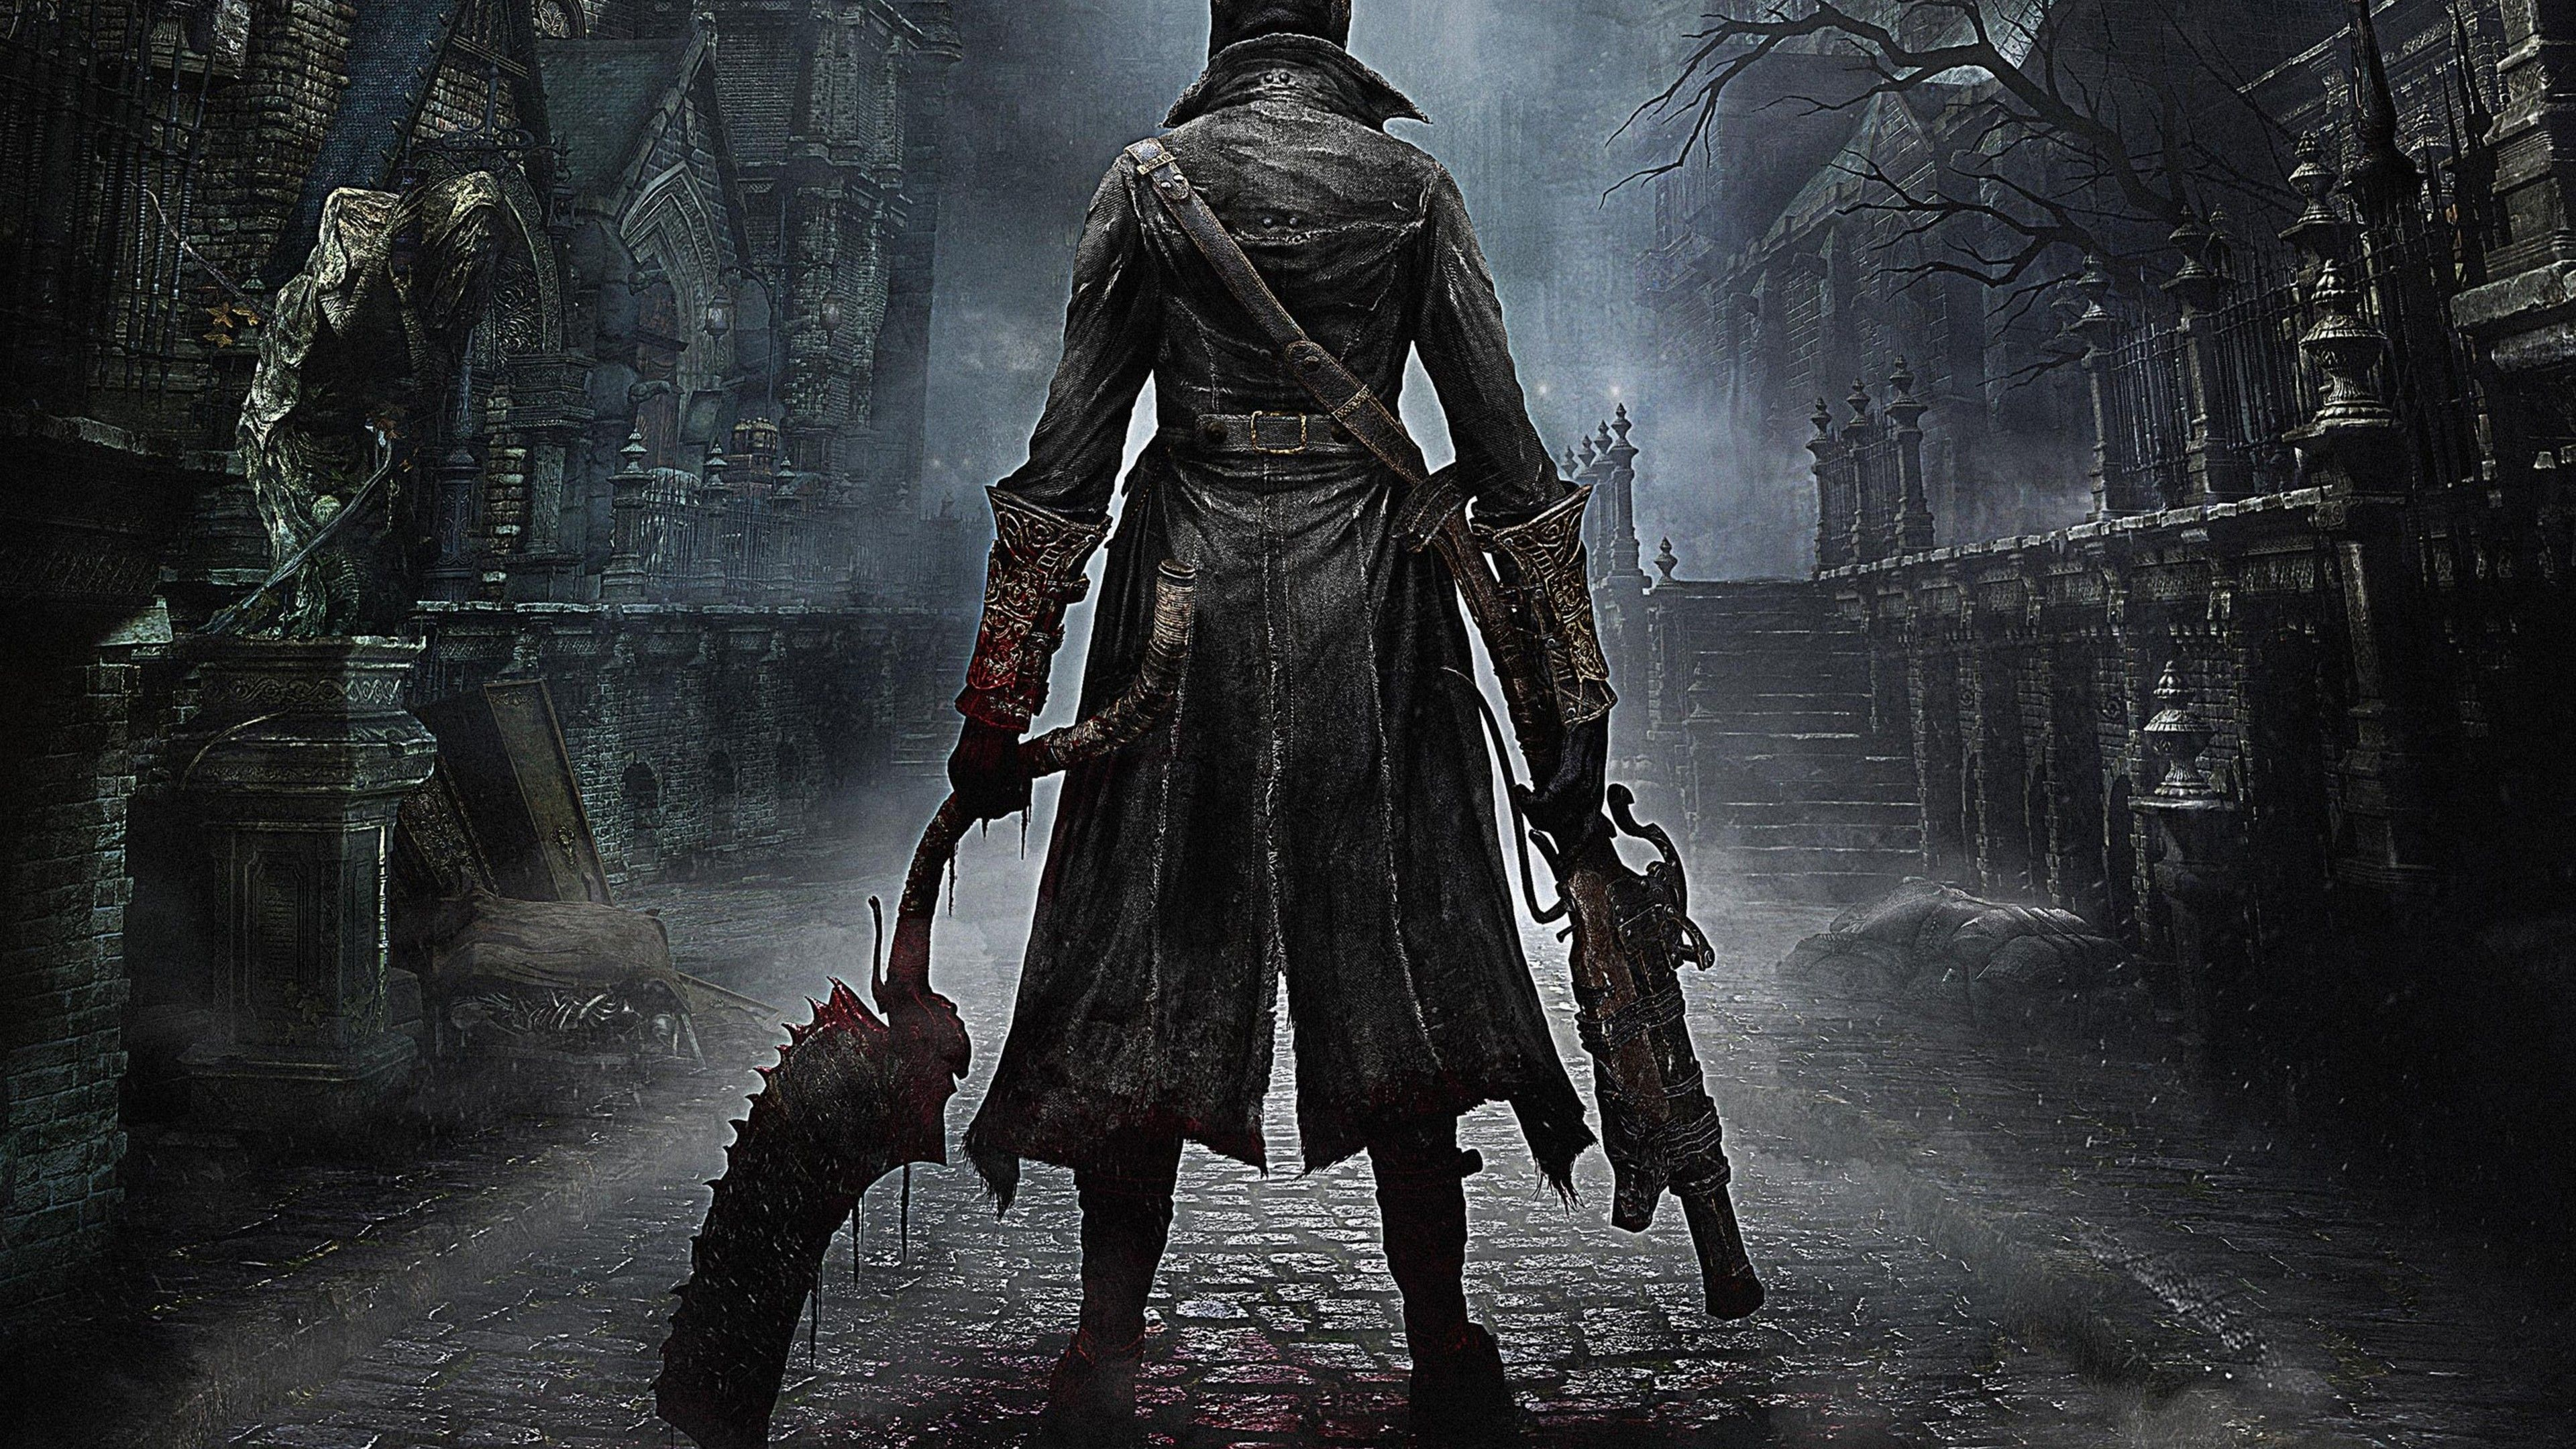 Bloodborne Ps4 Game Ps Games Wallpapers Games Wallpapers Bloodborne Bloodborne Game Bloodborne Ps4